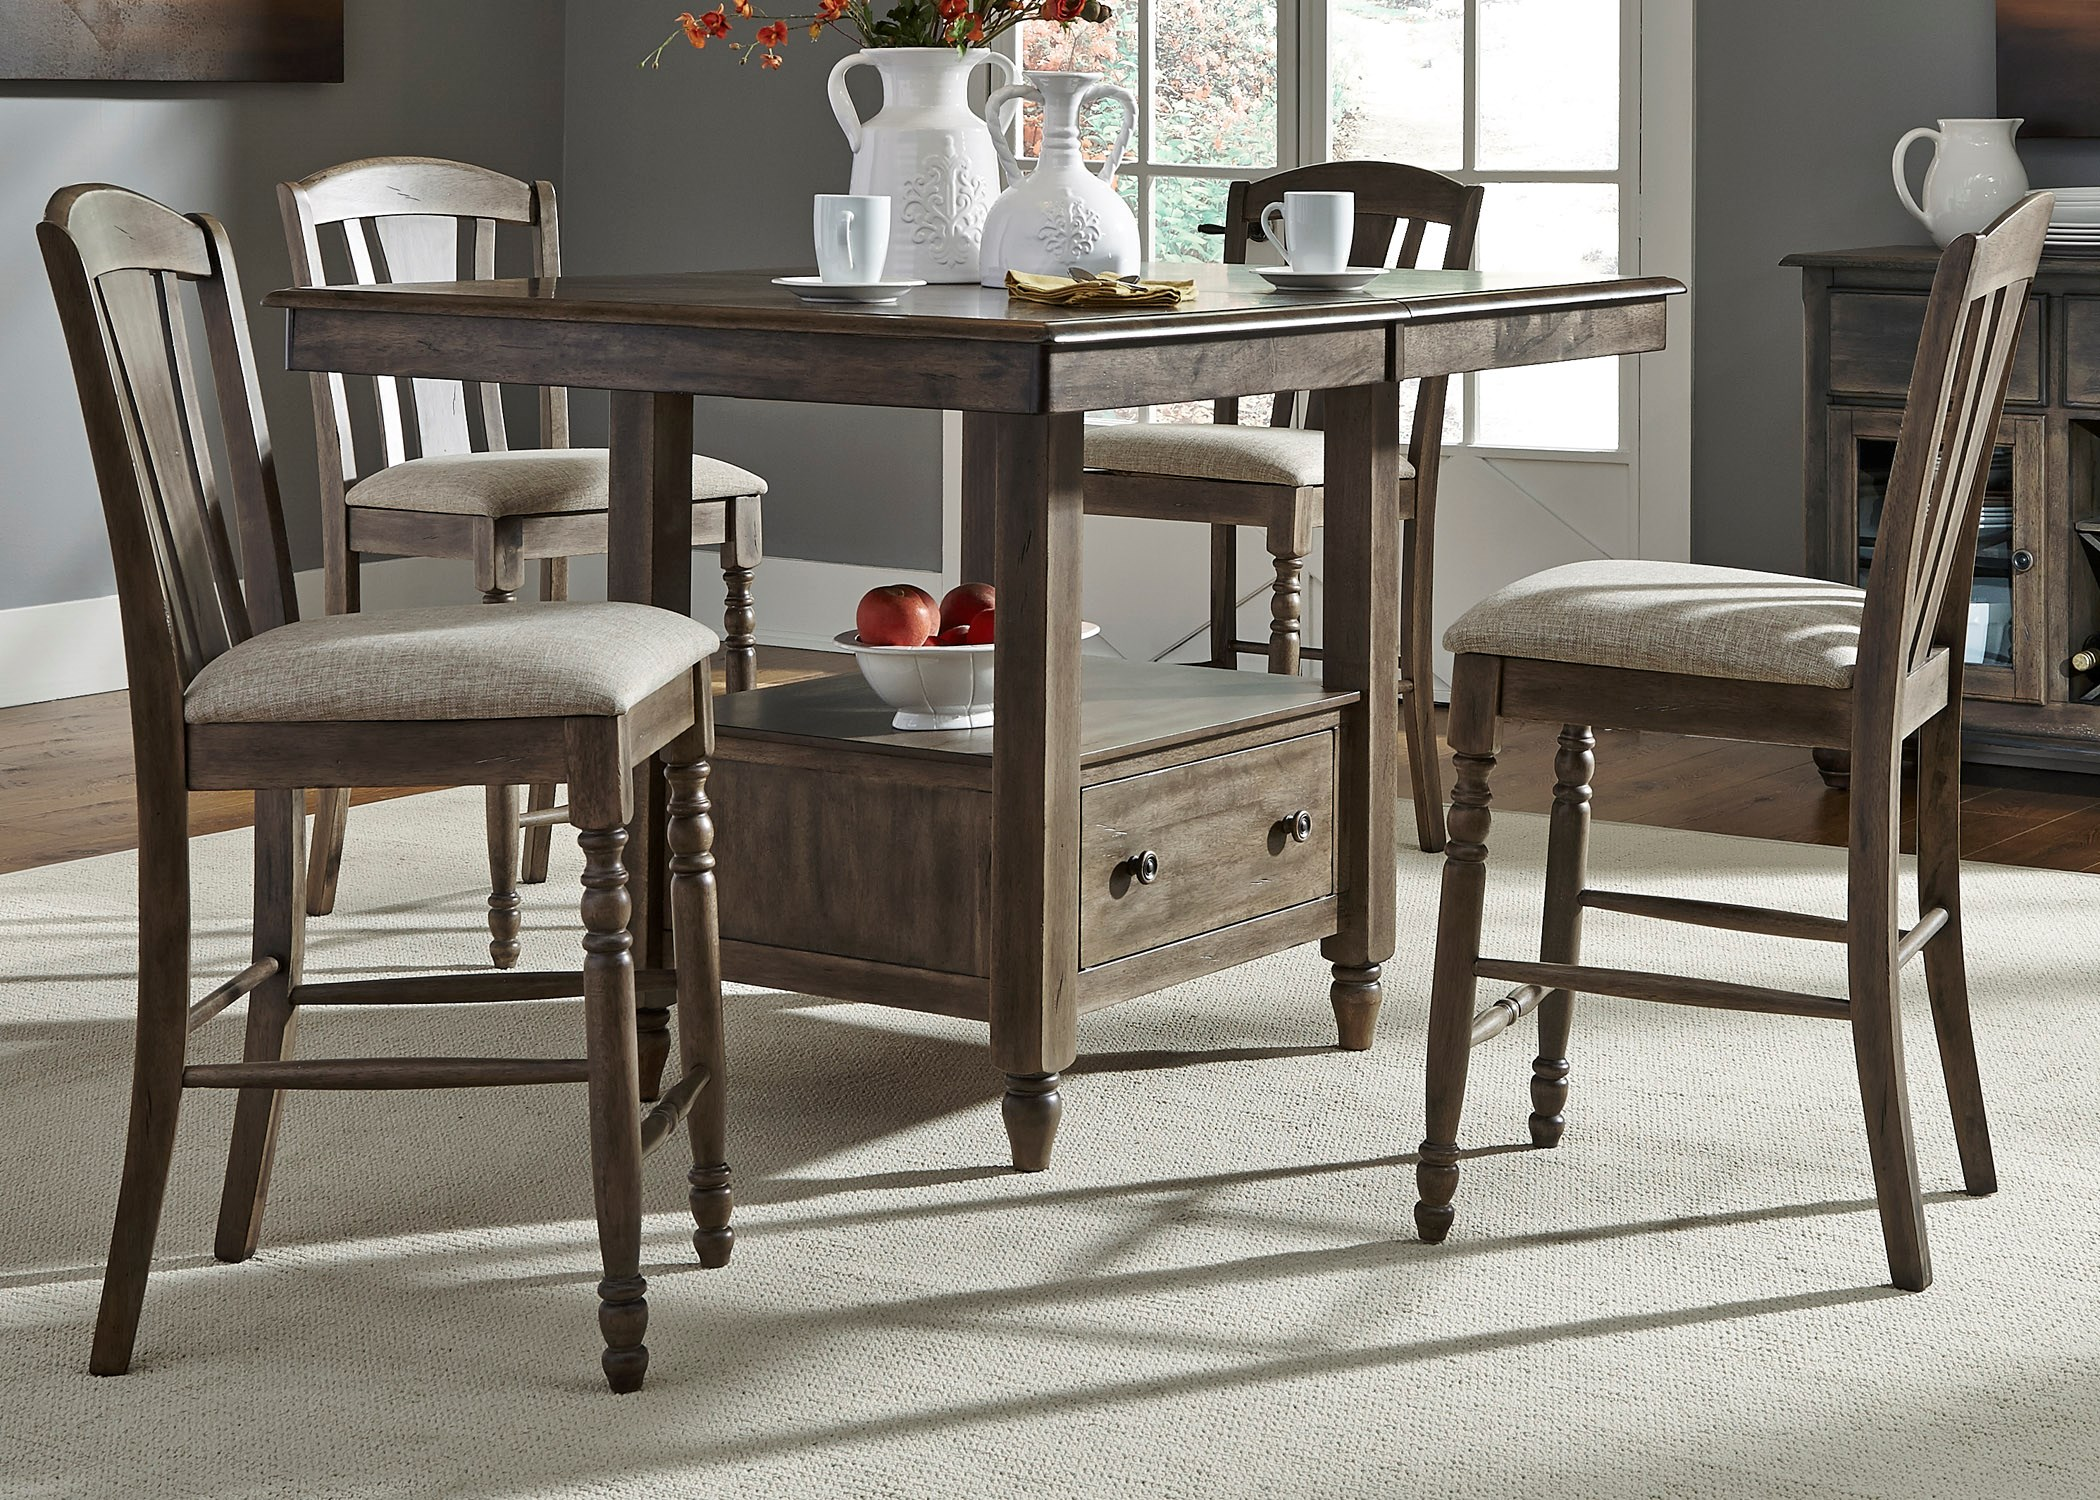 Candlewood 5 Piece Gathering Storage Table and Barstool Set by Liberty Furniture & Liberty Furniture Candlewood 163-CD-5GTS 5 Piece Gathering Storage ...